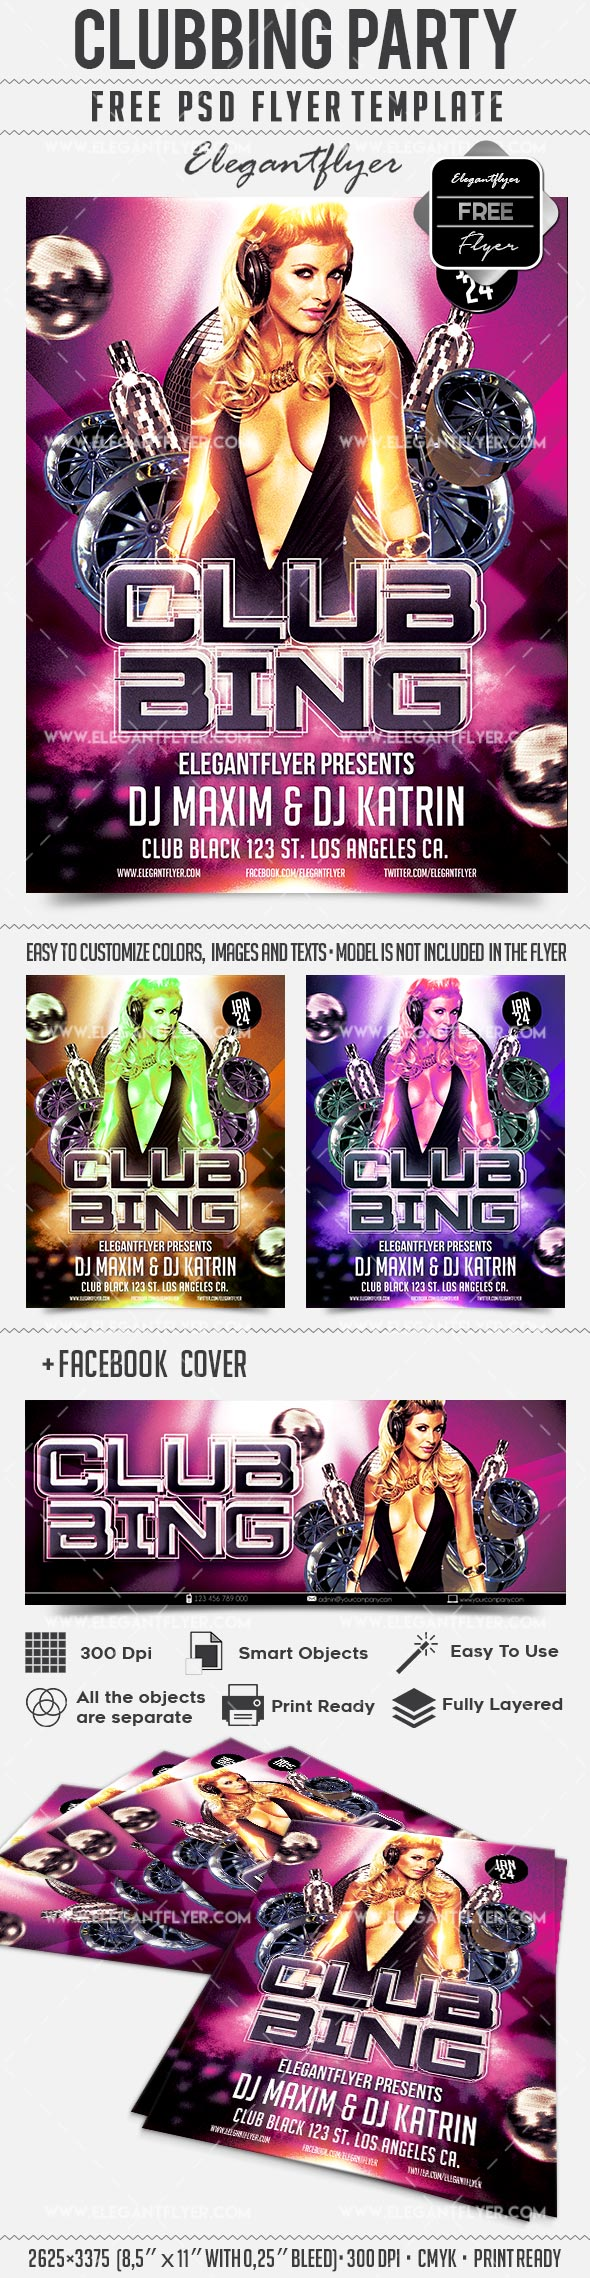 Clubbing Party – Free Flyer PSD Template + Facebook Cover